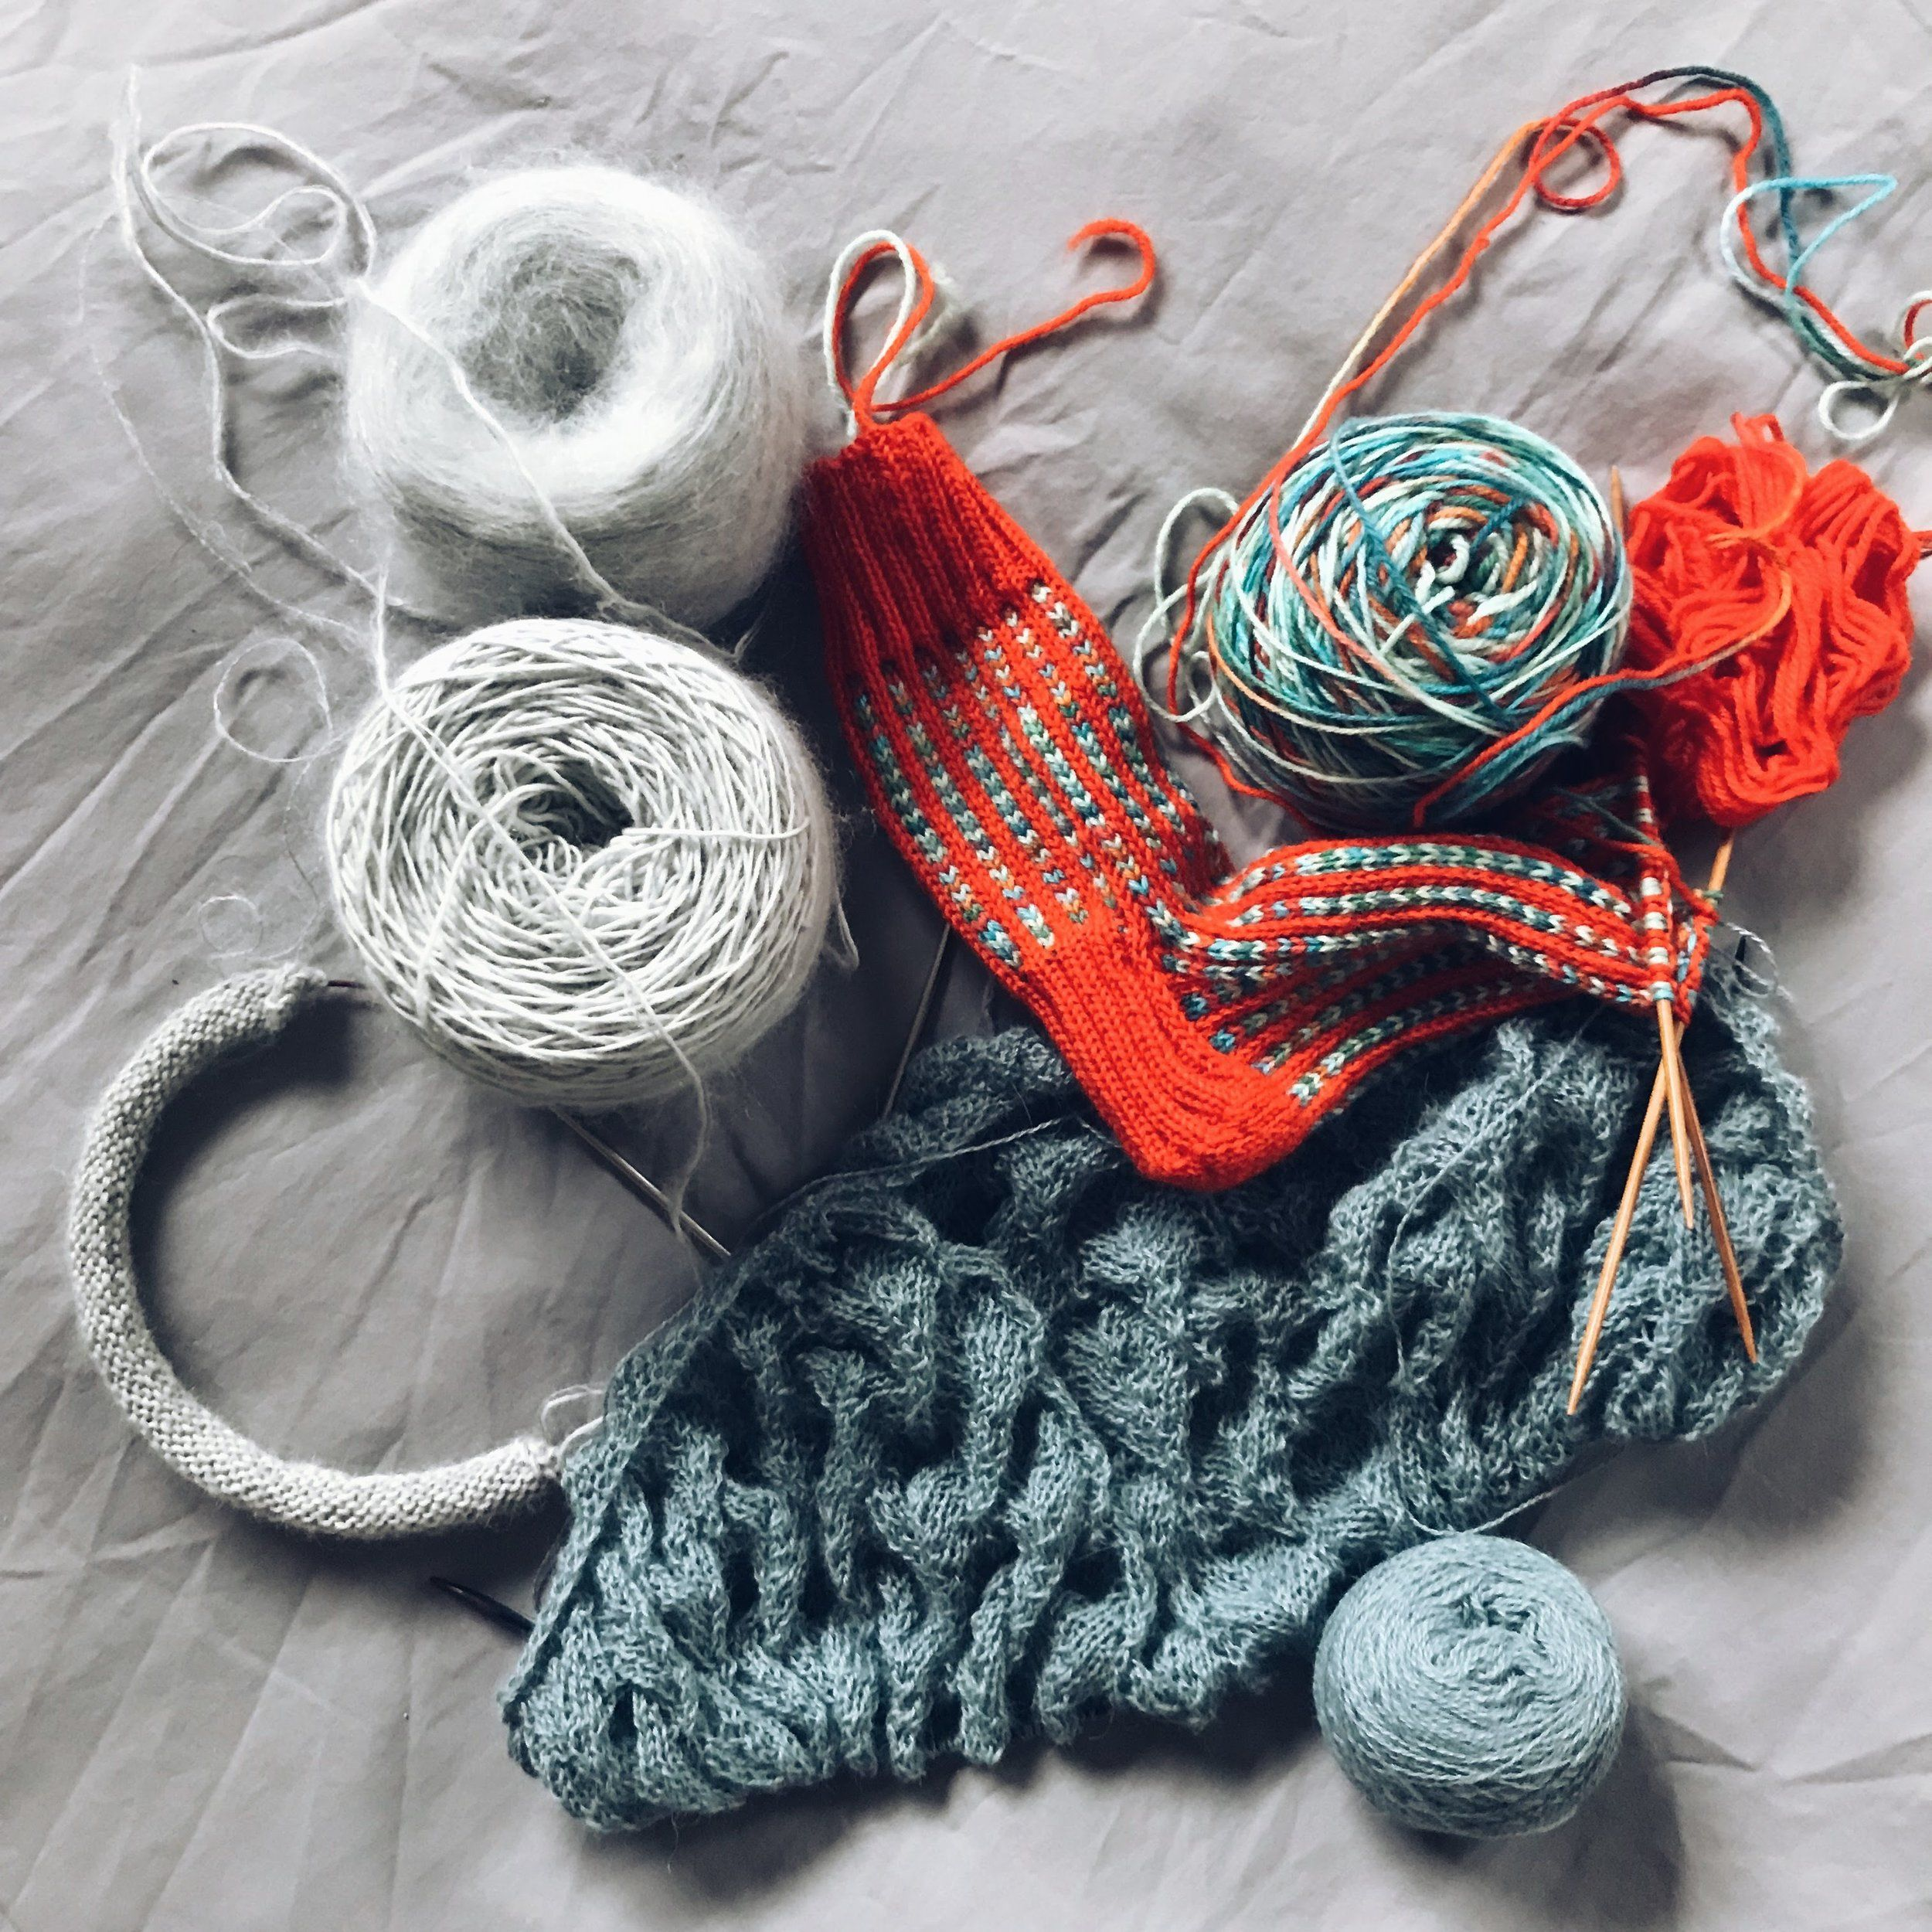 Mar 16 What's On, What's Off 5 (With images) Crochet